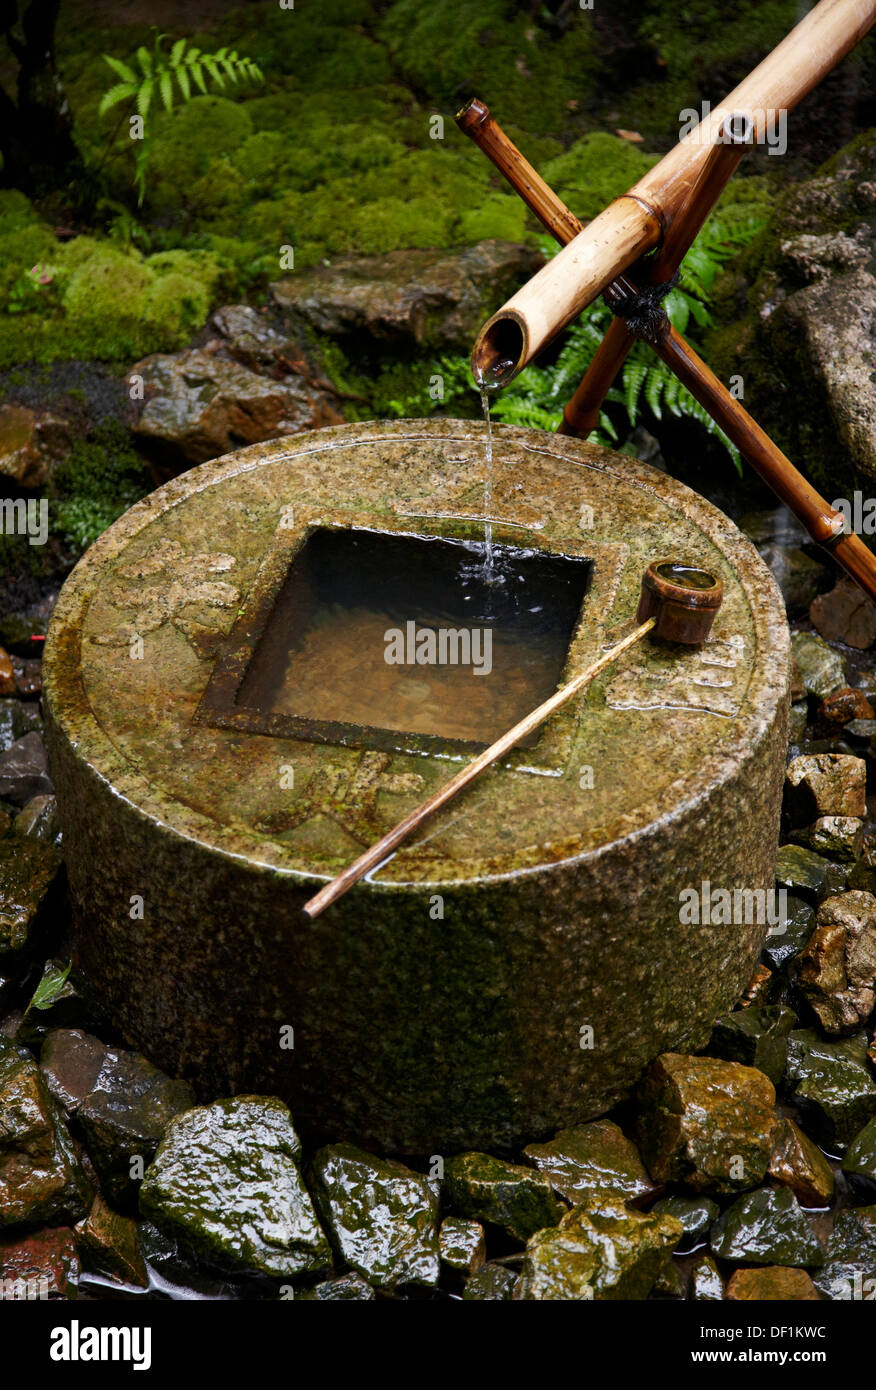 Tsukubai, Stone-wash basin, Zen philosophy, Ryoanji Temple, Kyoto, Japan. - Stock Image